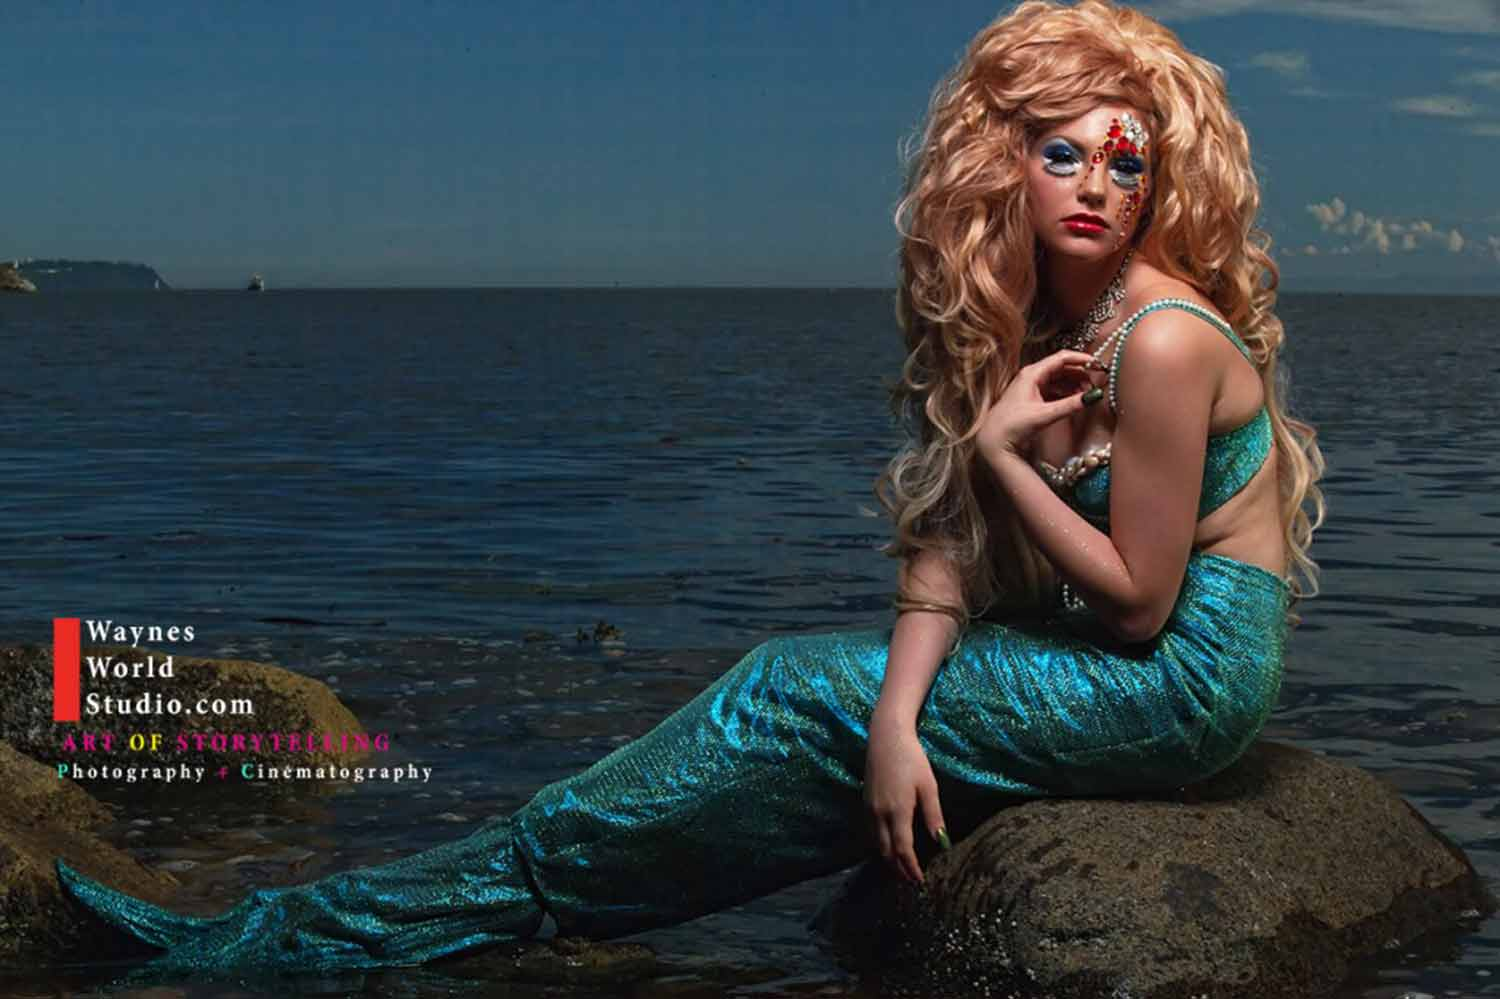 Vancity Fashion mermaid photo